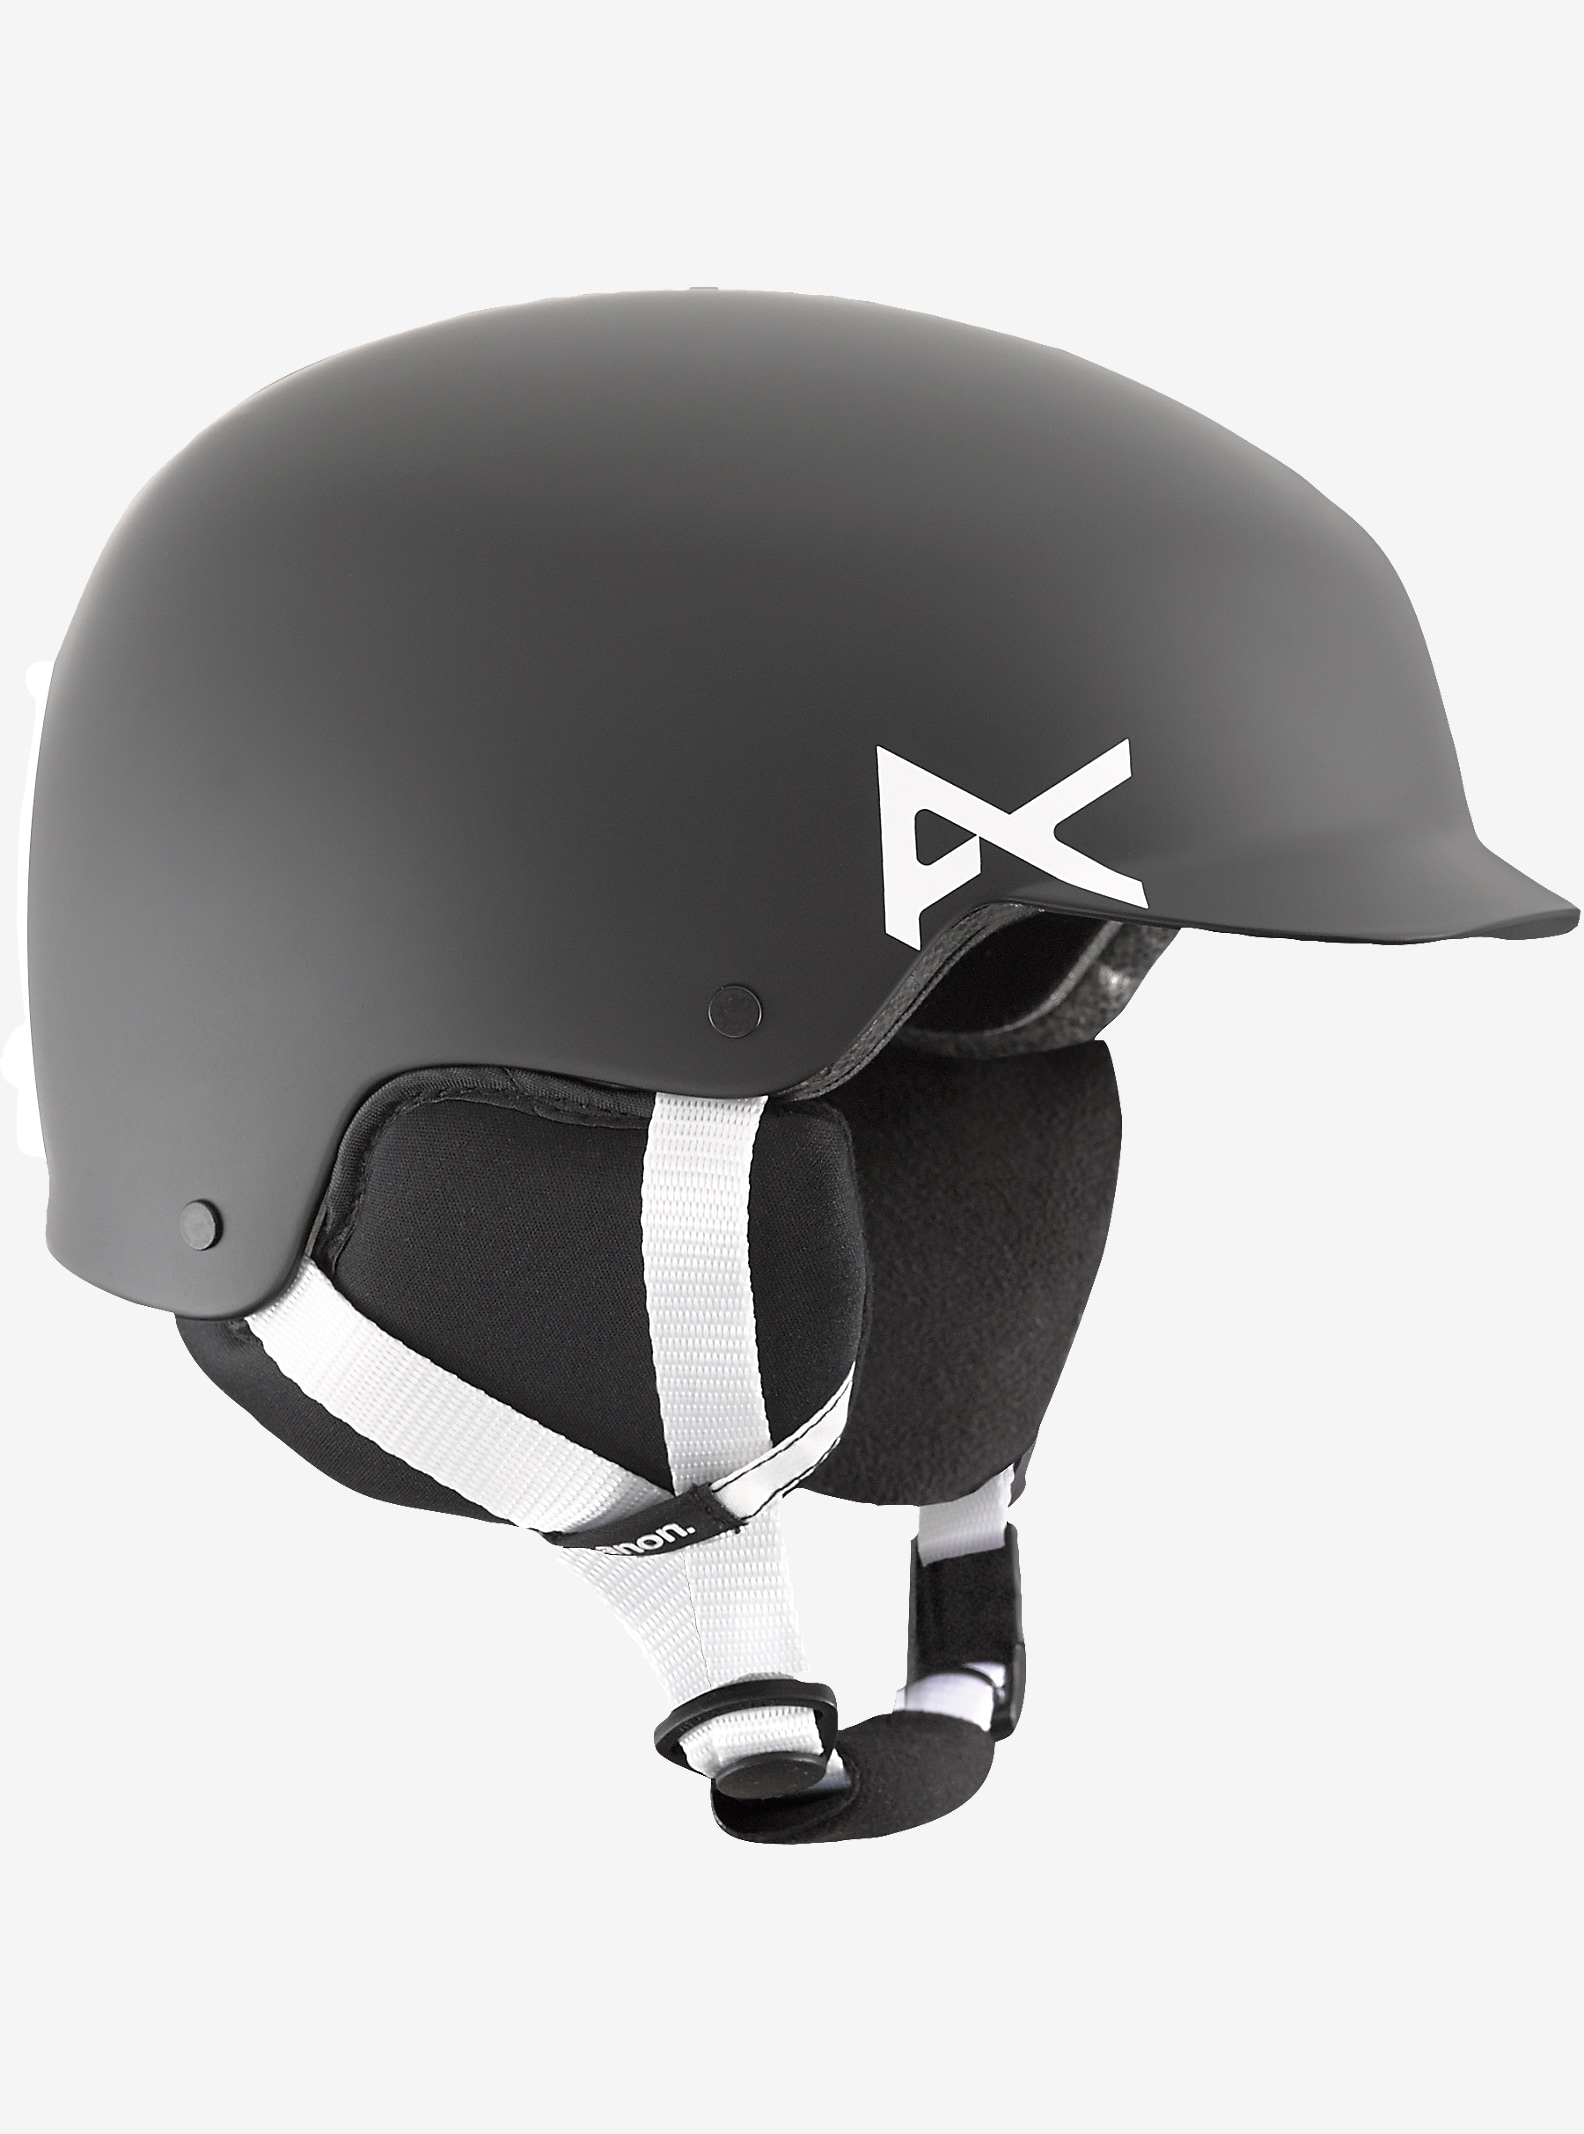 Kids' Anon Scout Helmet shown in Black